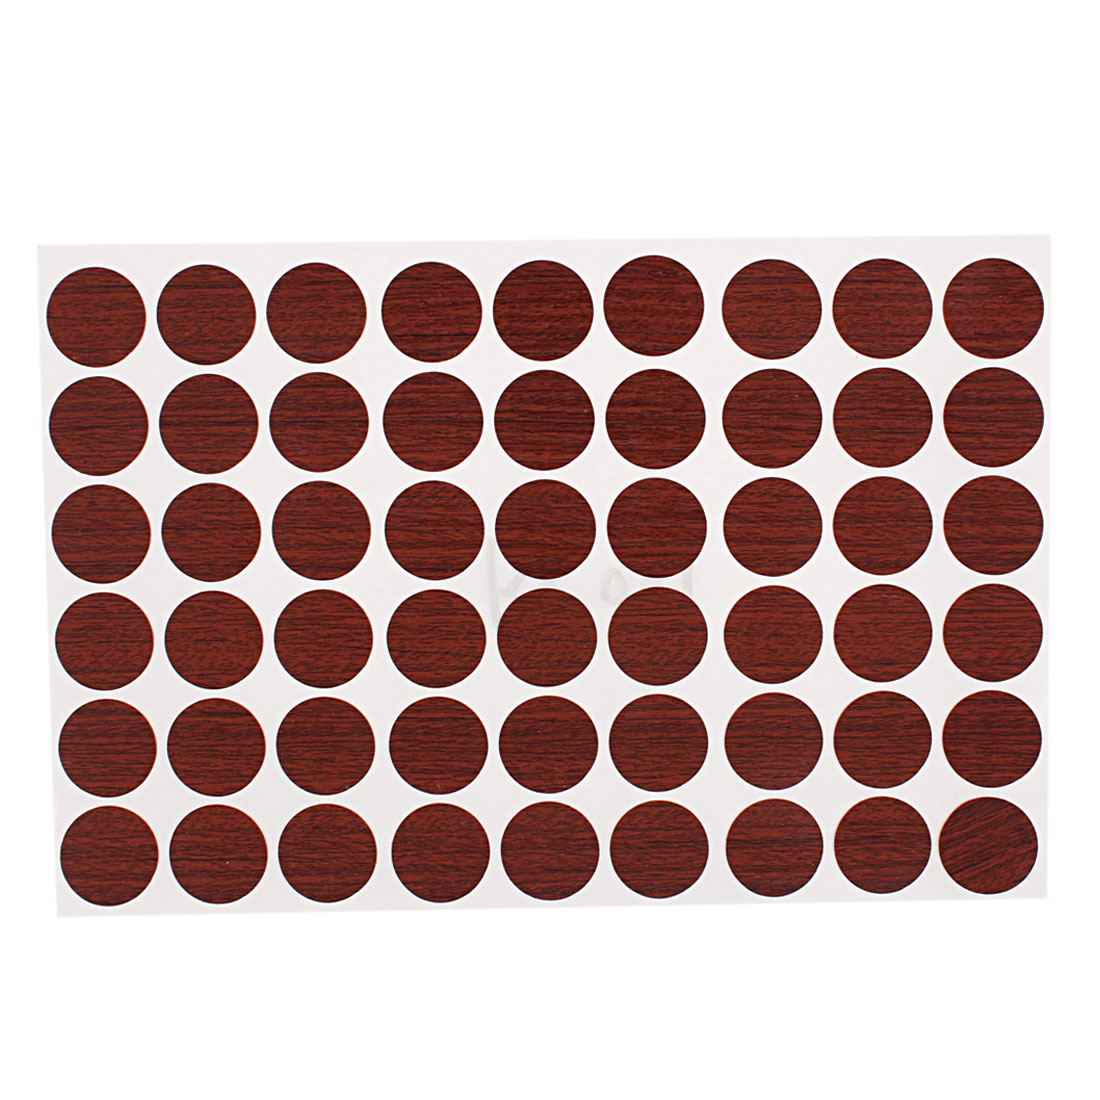 Furniture Desk Self-adhesive Screw Covers Caps Stickers Decor Brown 54 in 1